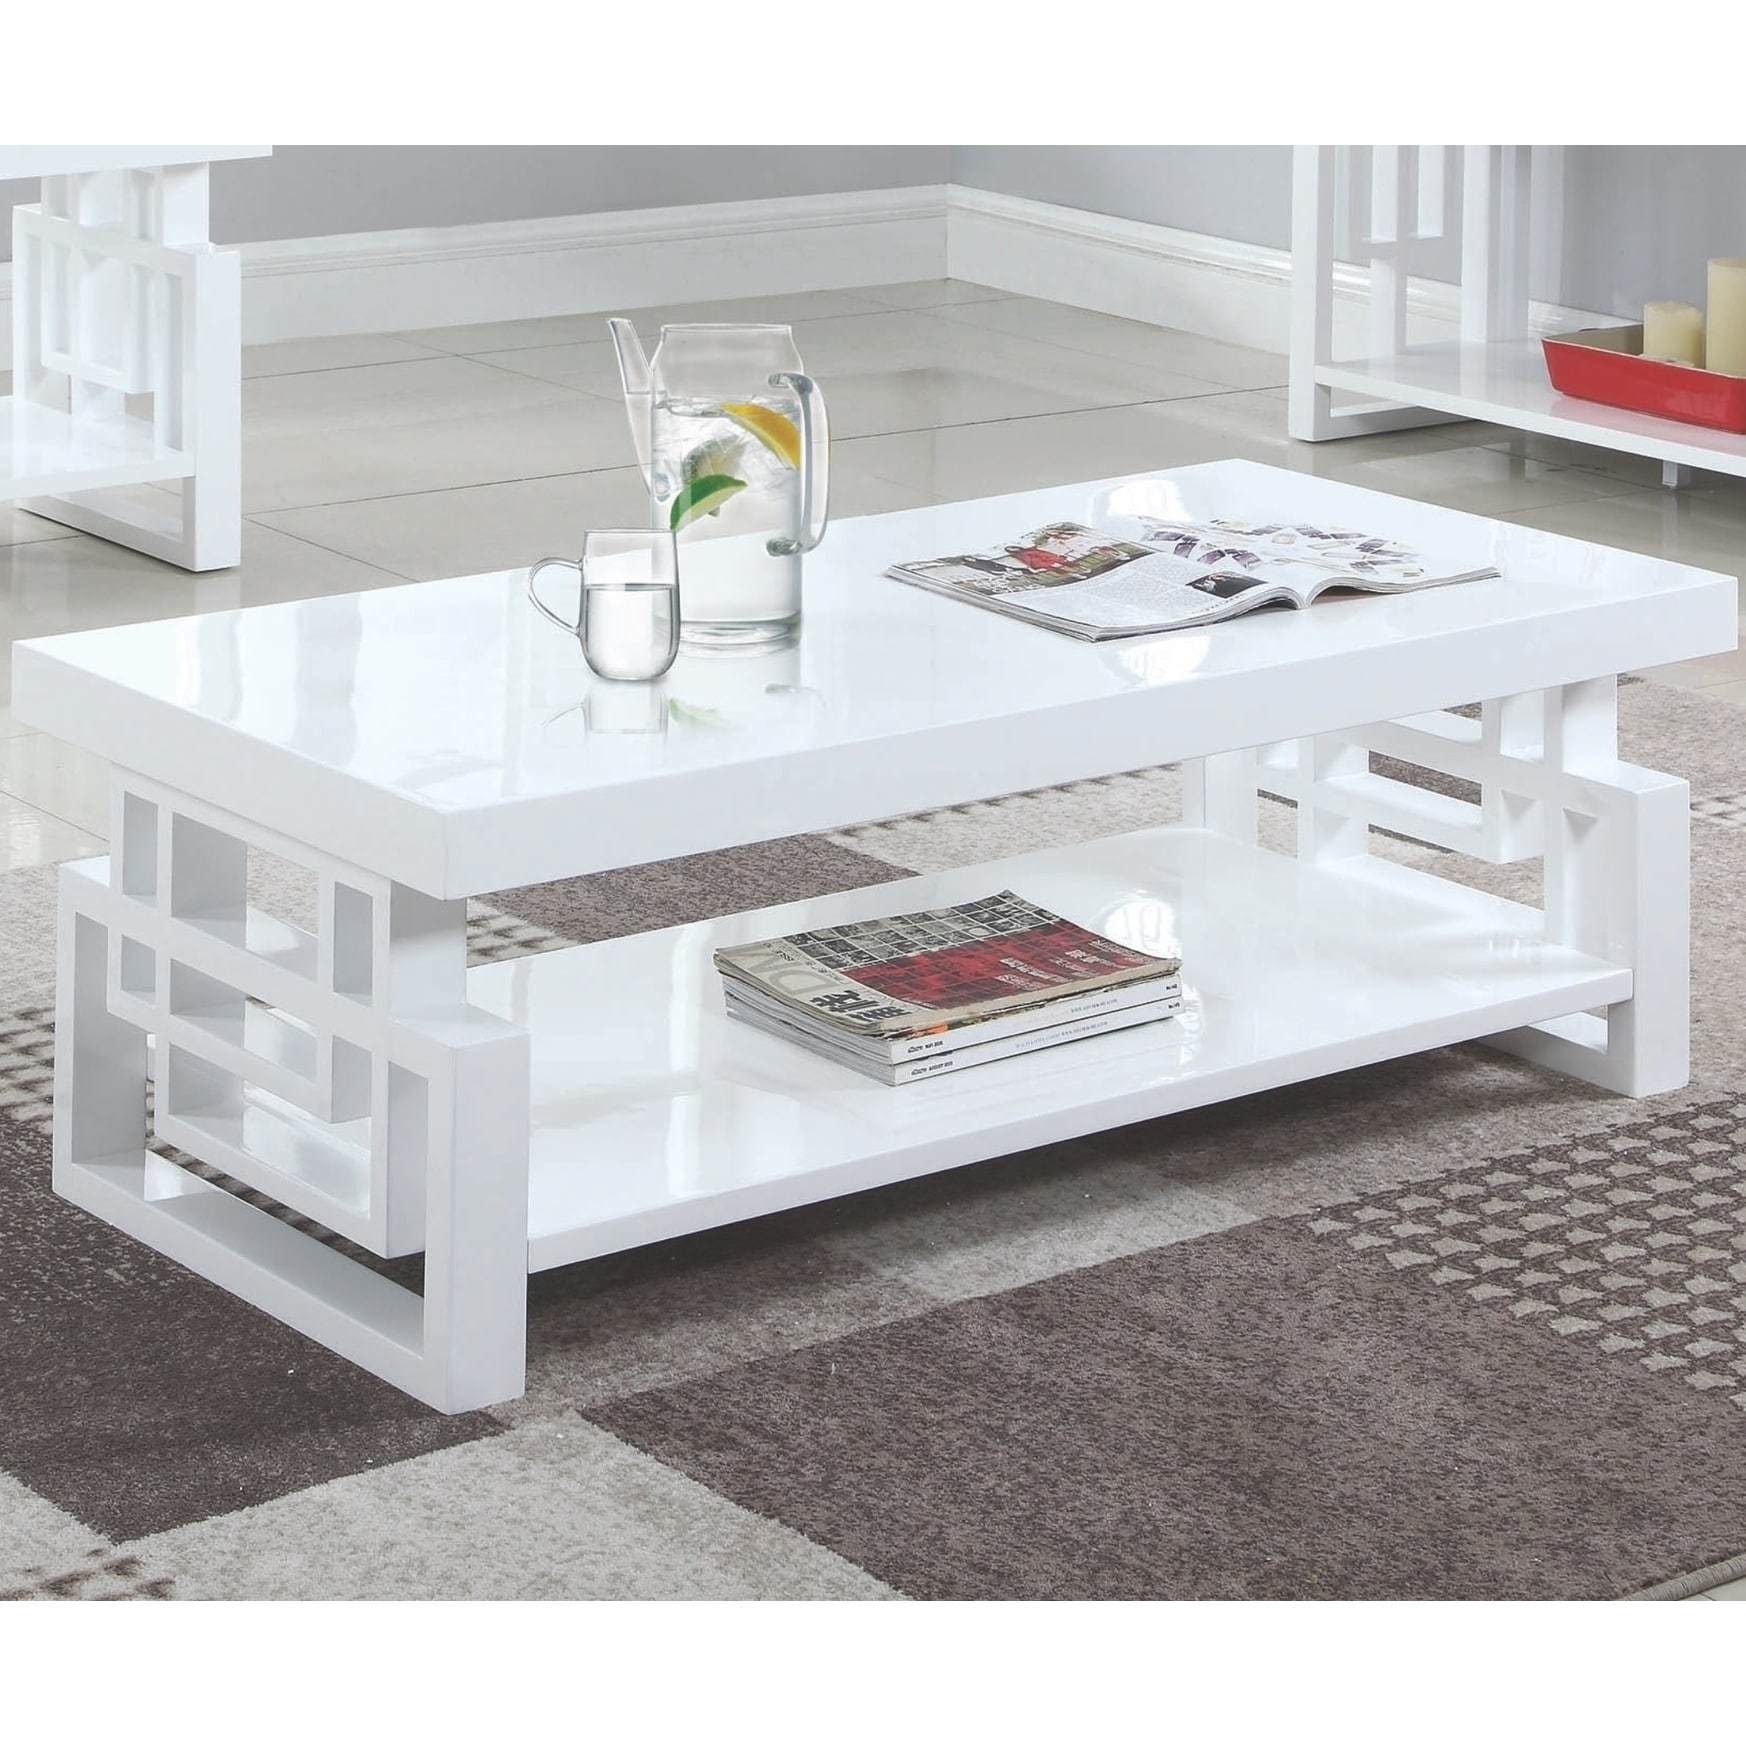 Modern Artistic Design High Glossy White Coffee Table